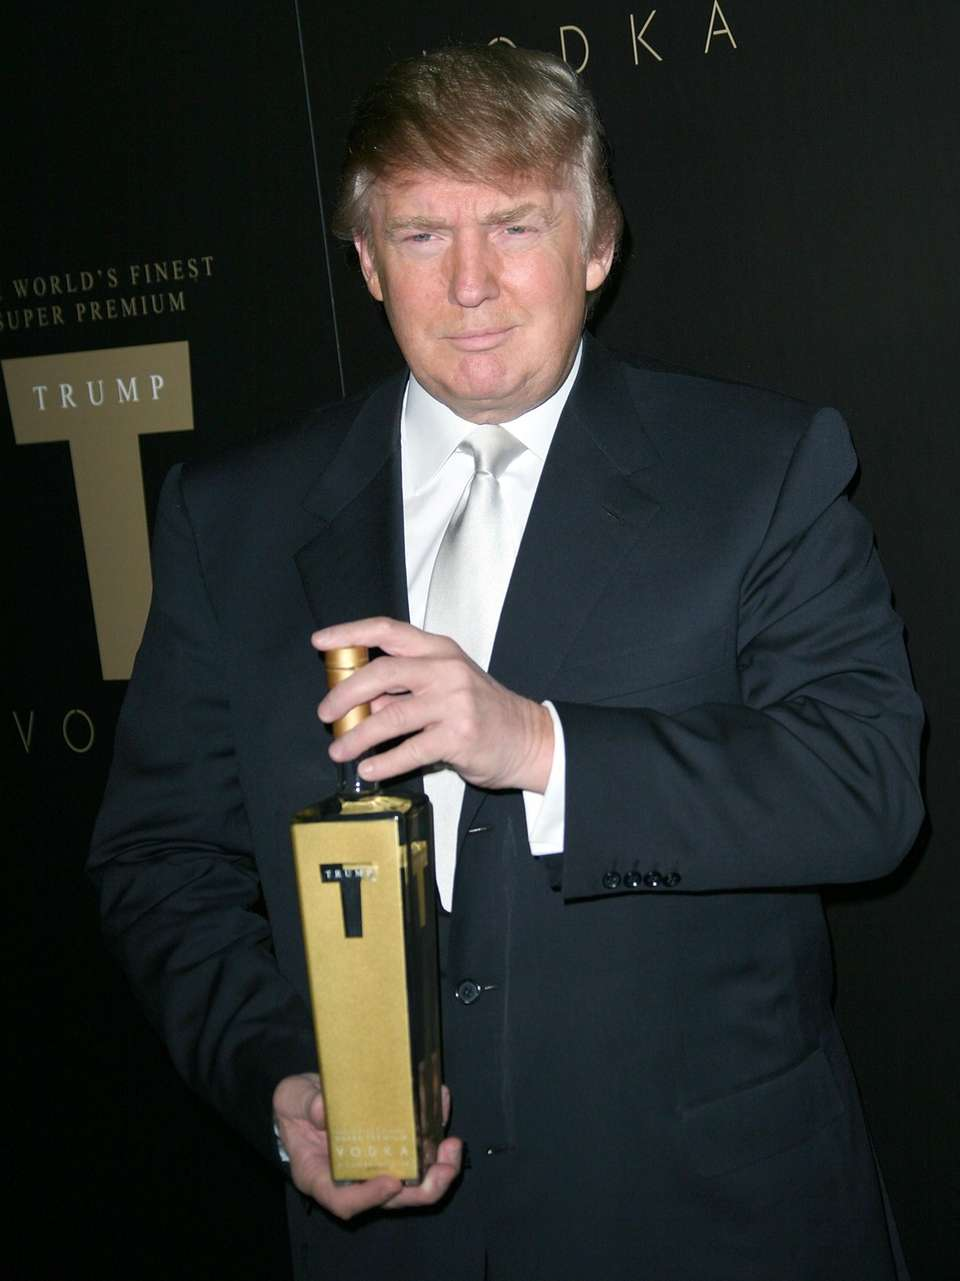 With the launch of Trump Vodka, the billionaire